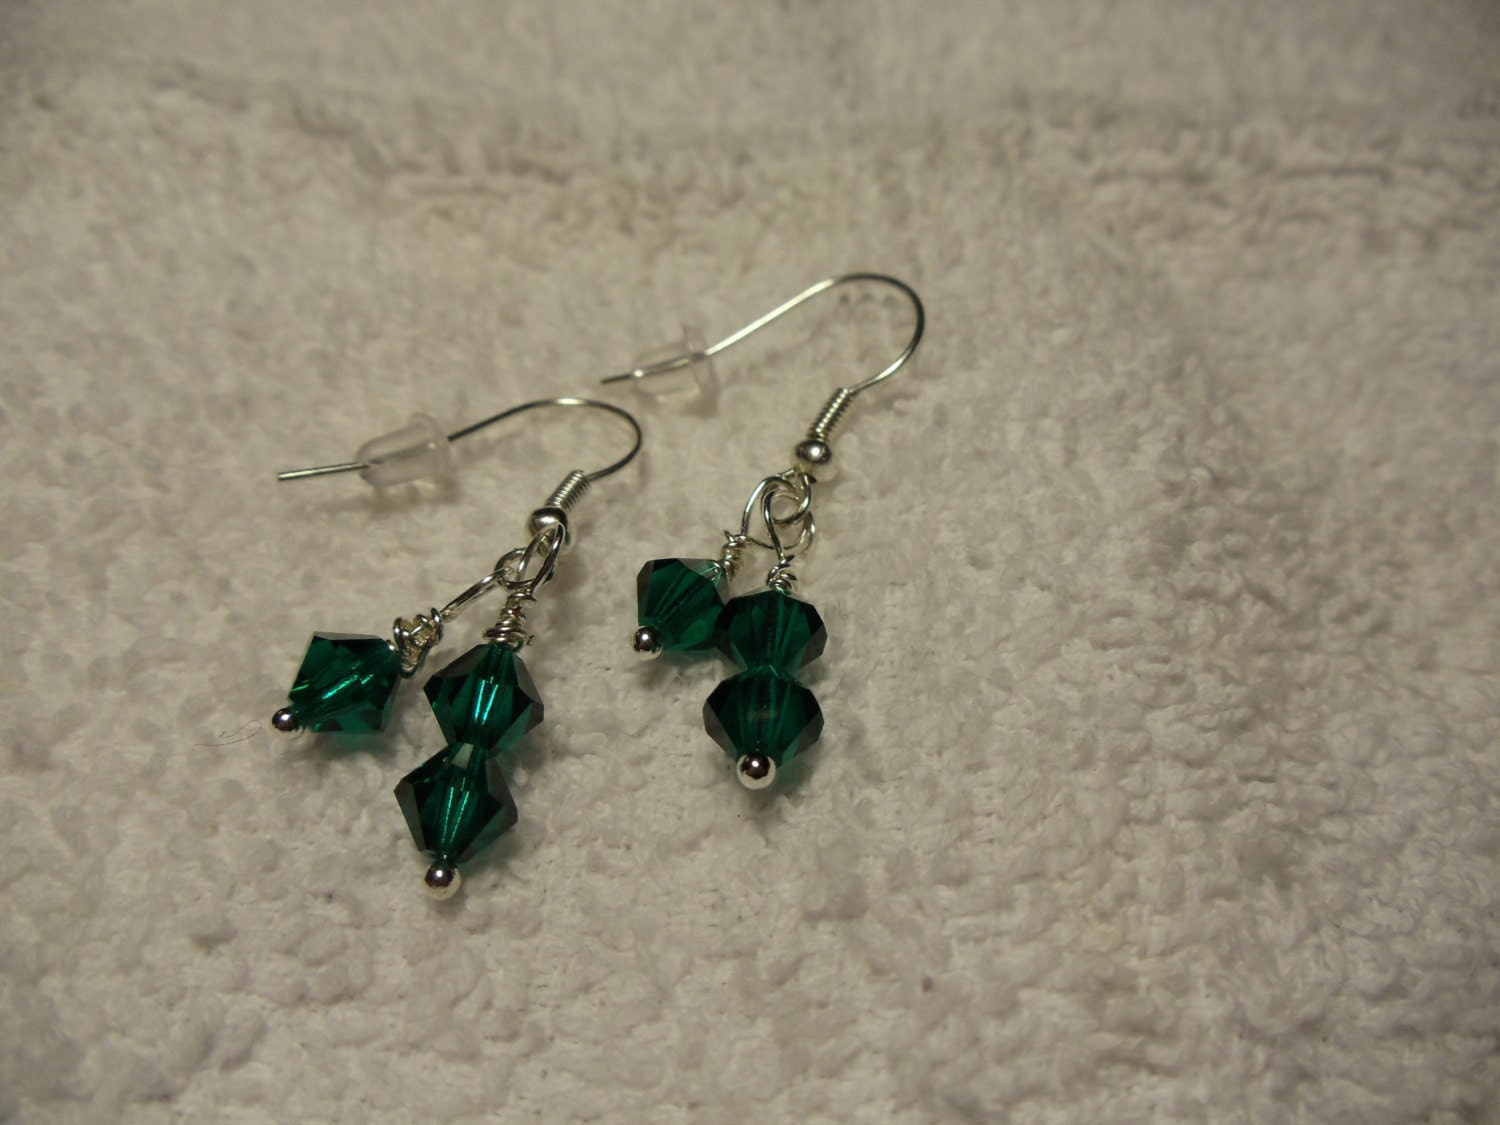 Green czech bicones Crystal Earrings, Silver Ear Wires, Dangle - TamarasJewelry2